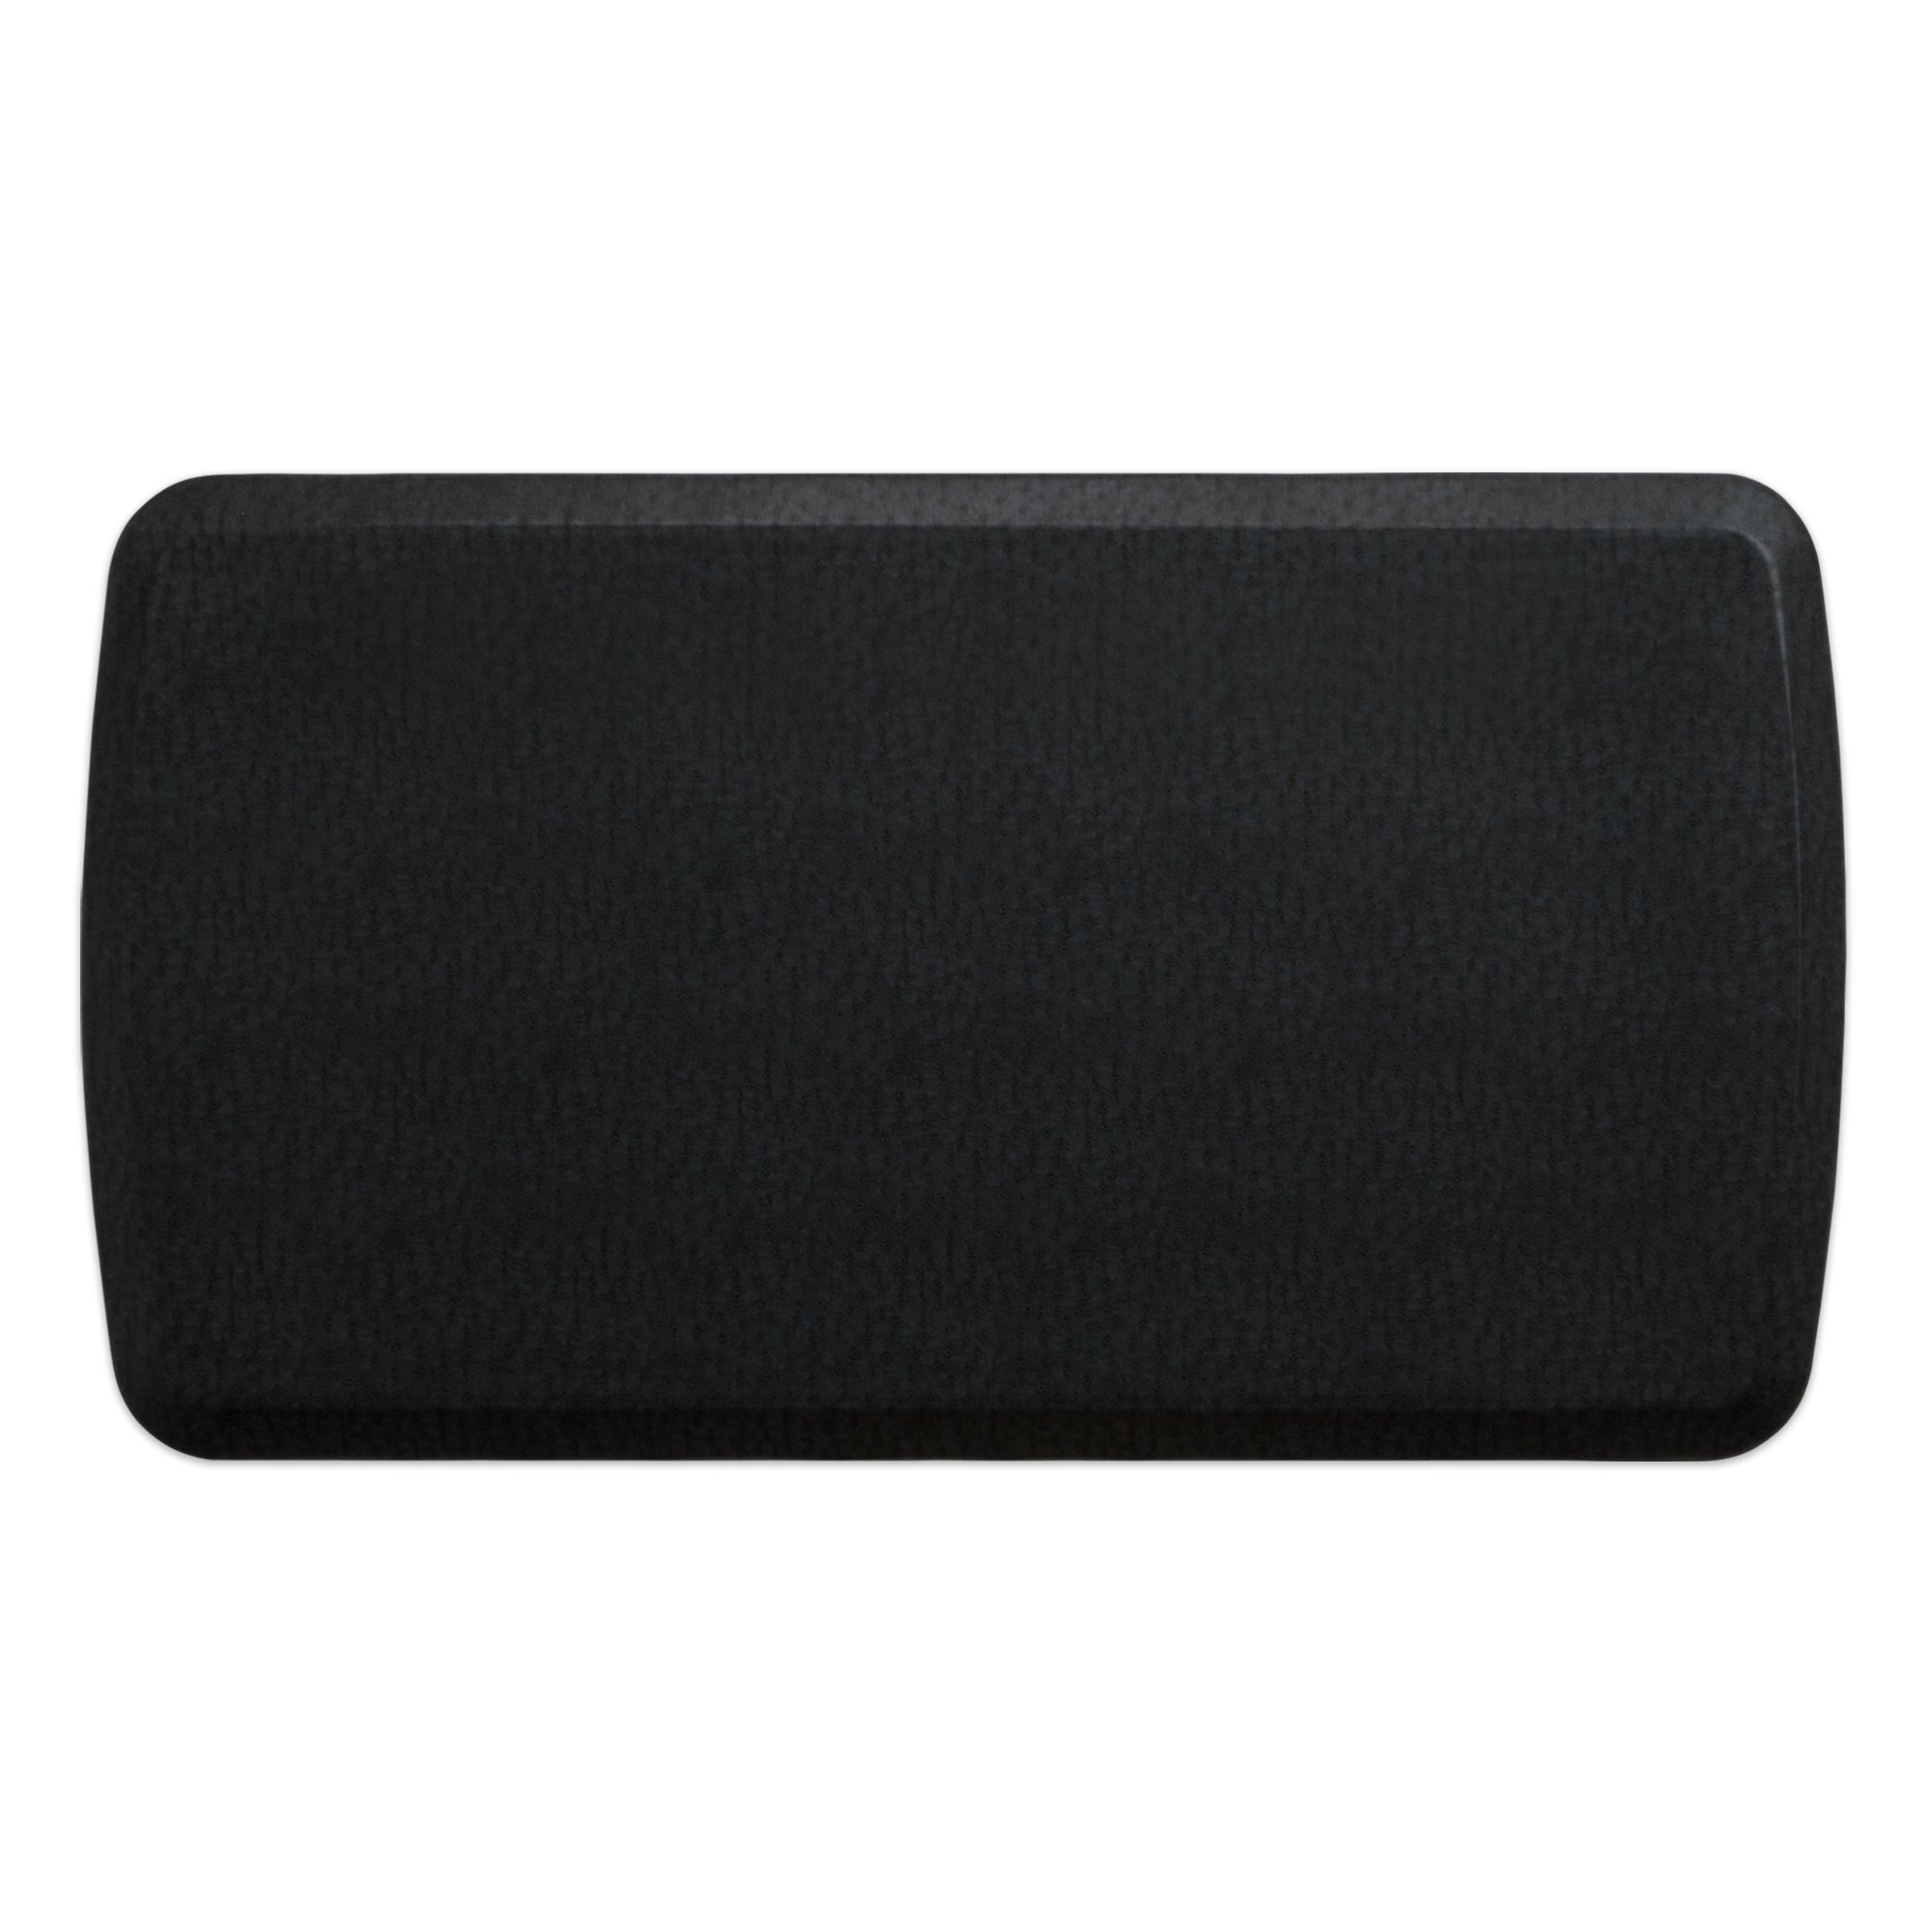 """GelPro Elite Premier Anti-Fatigue Kitchen Comfort Floor Mat, 20x36"""", Quill Black Stain Resistant Surface with therapeutic gel and energy-return foam for health & wellness"""